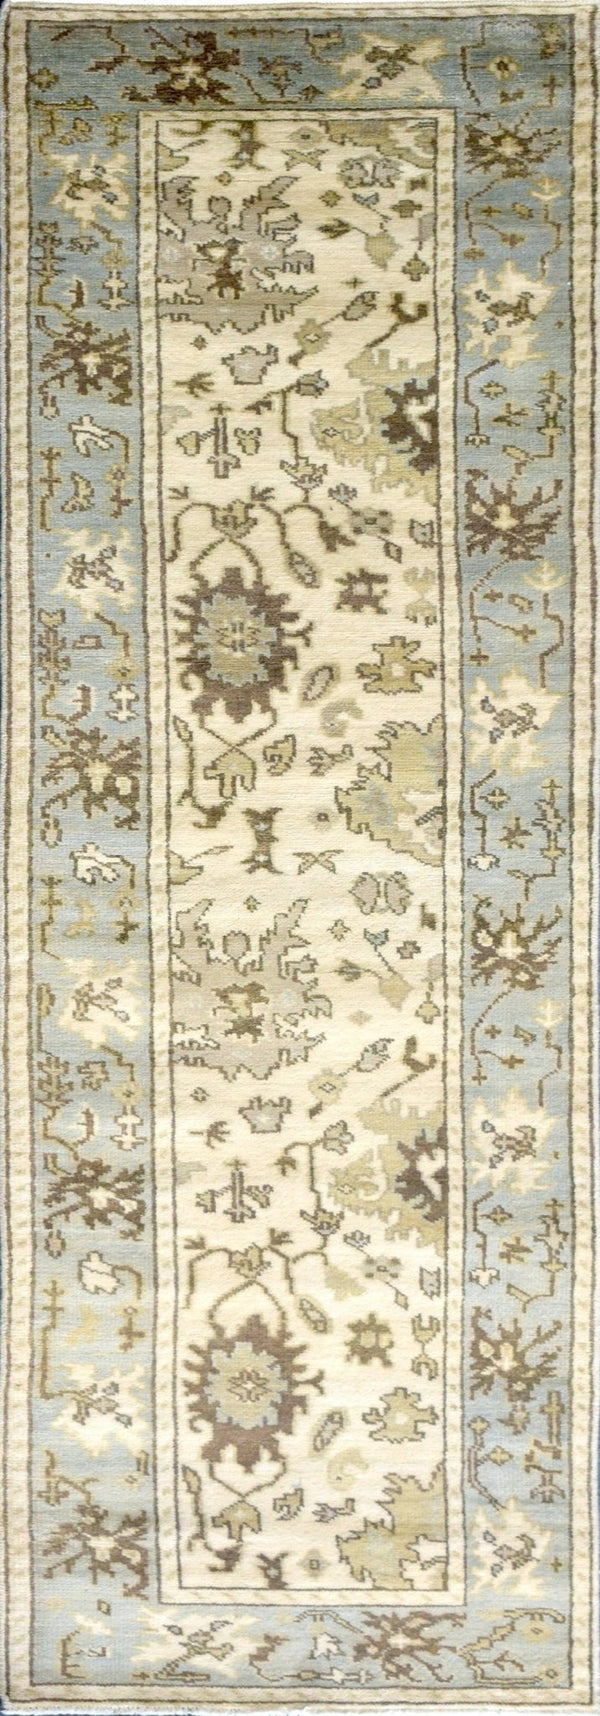 Hand Knotted Antique Oushak Wool Runner Rug - The Rug Decor